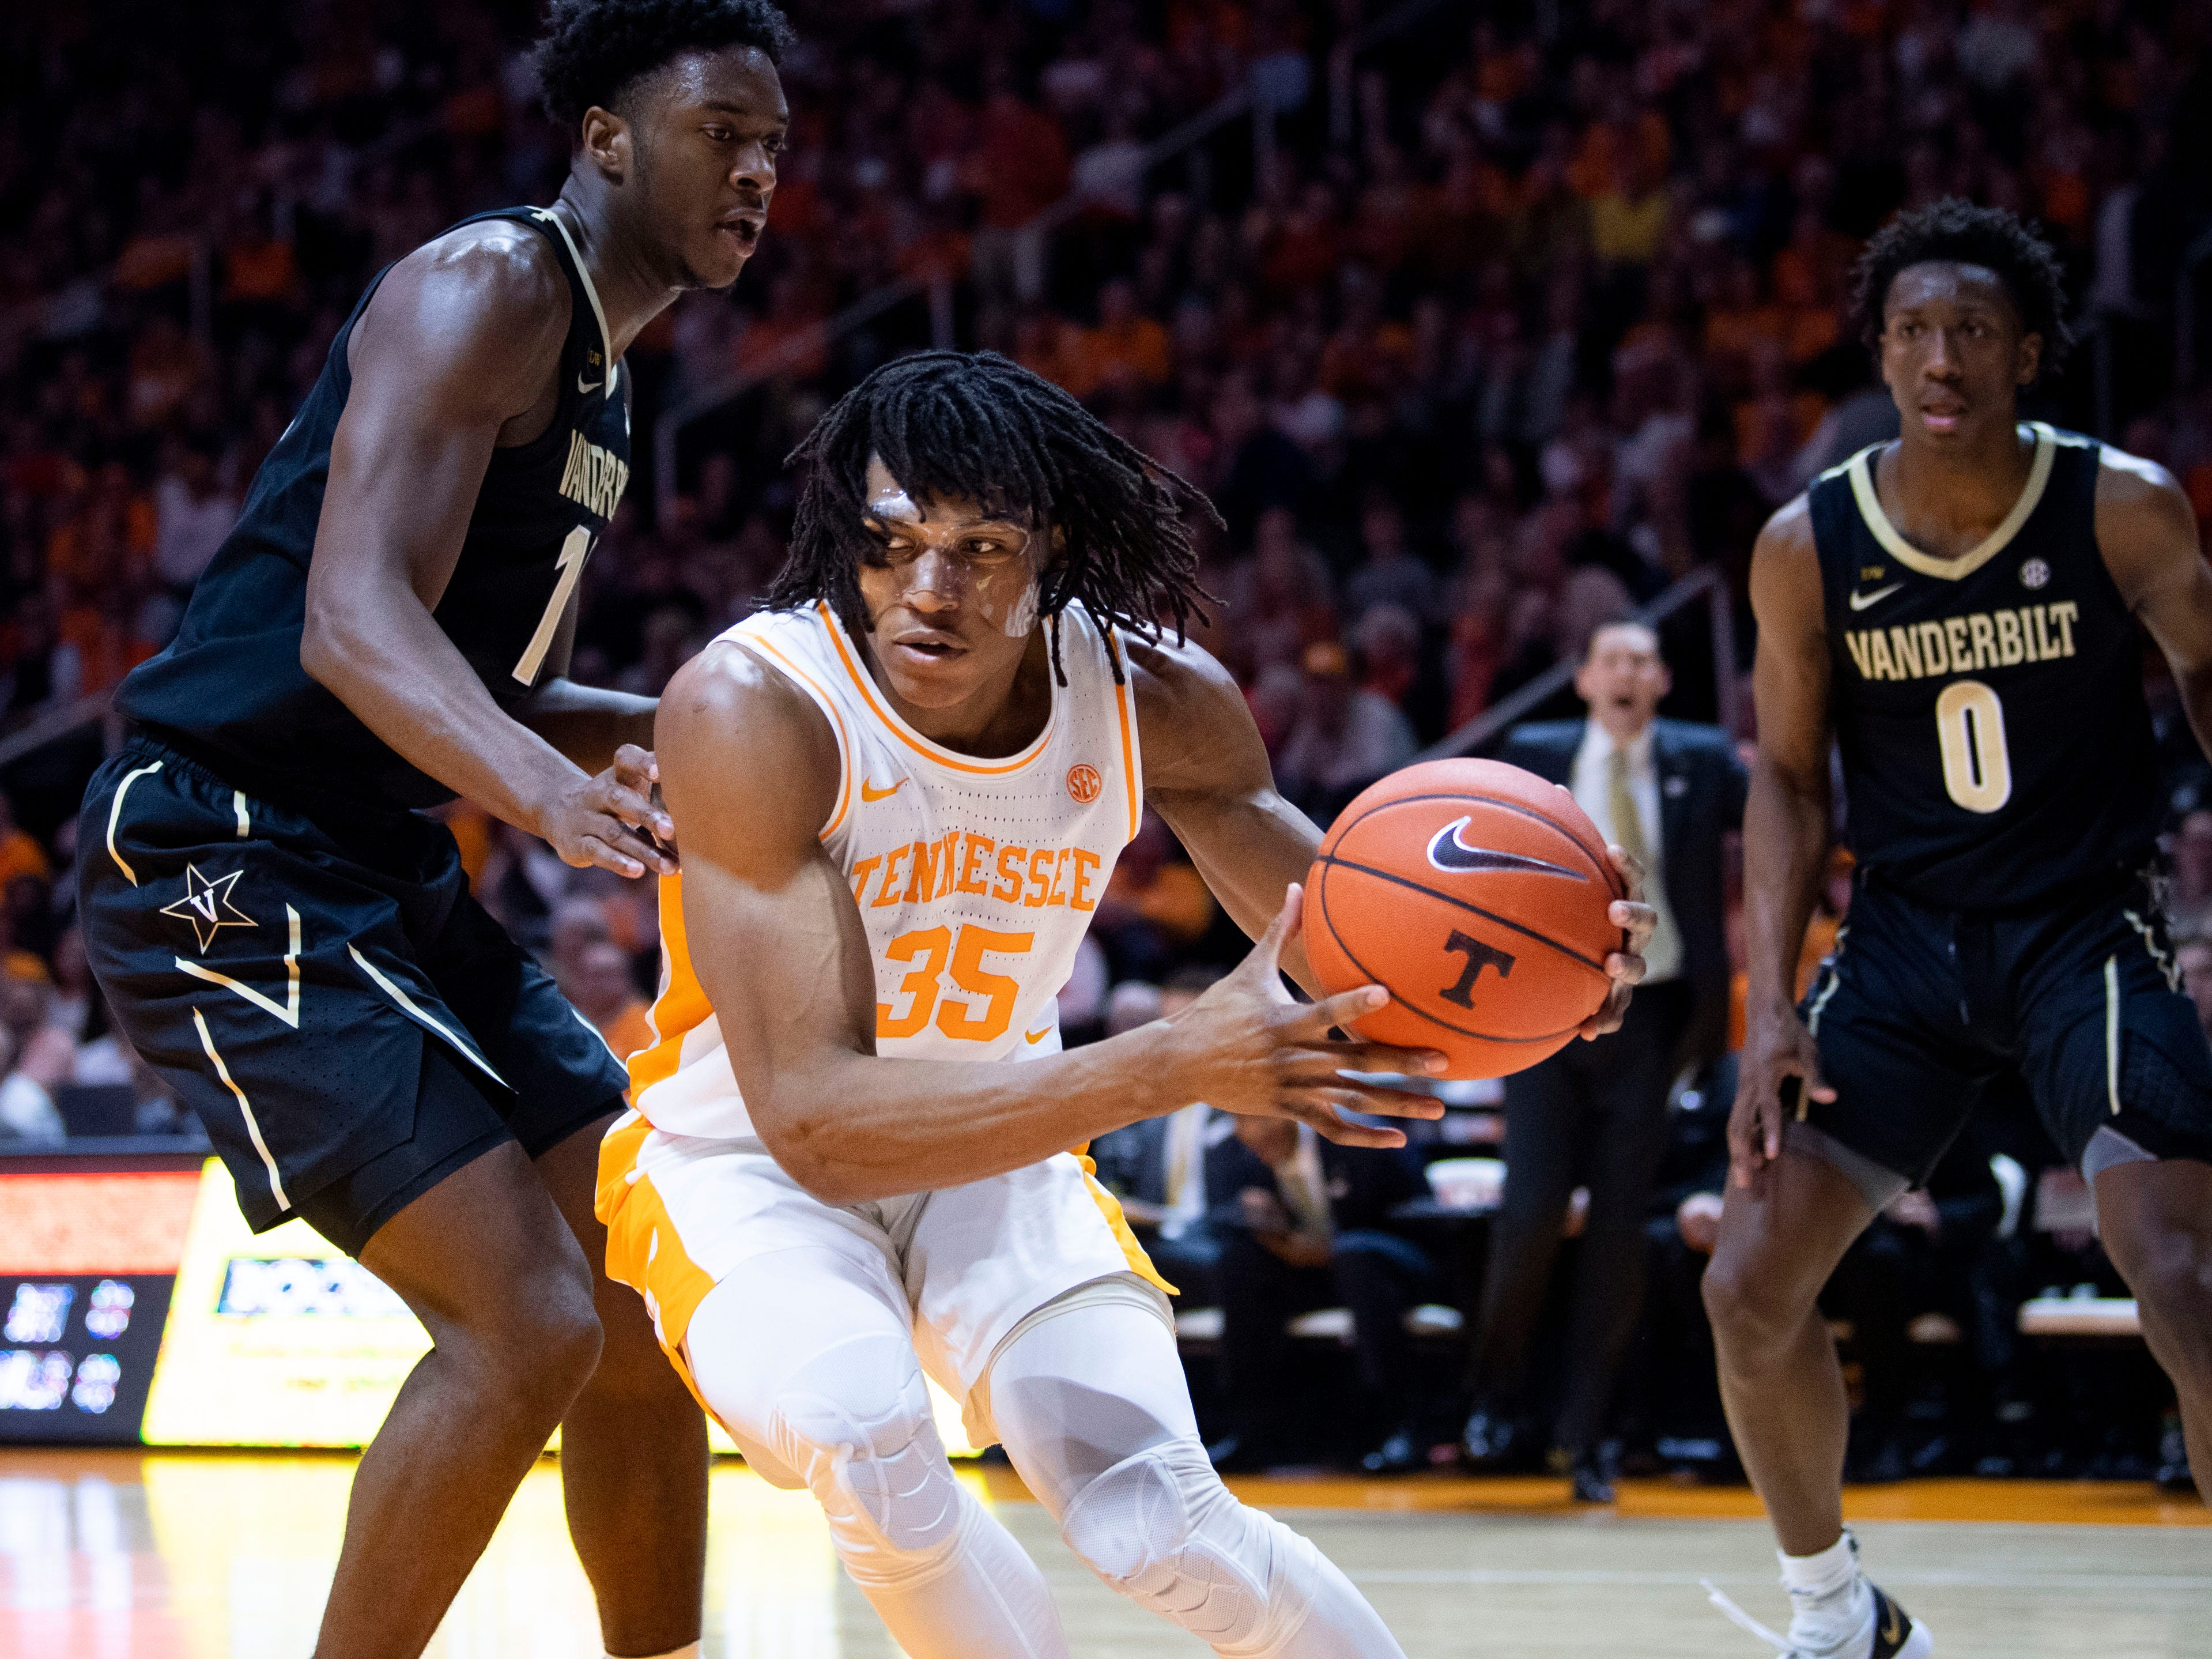 Tennessee's Yves Pons (35) is guarded by Vanderbilt's Clevon Brown (15) on Tuesday, February 19, 2019.